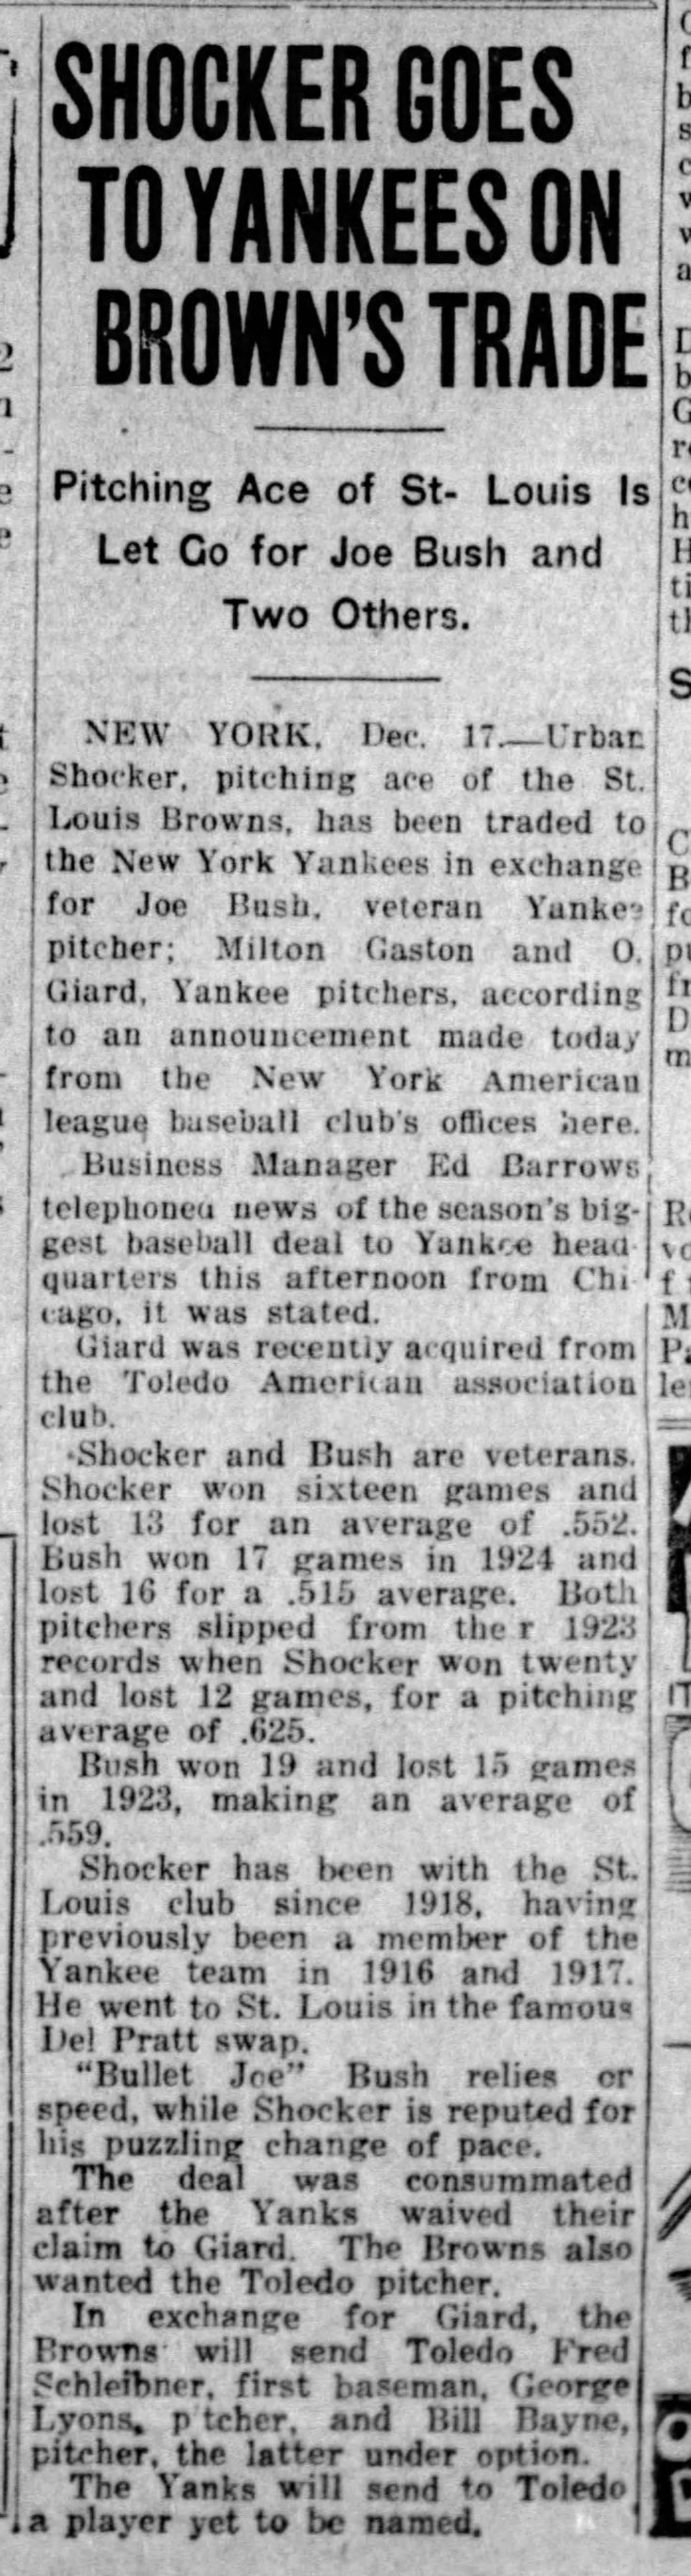 lyons traded to toledo dayton_herald_dec_17__1924_